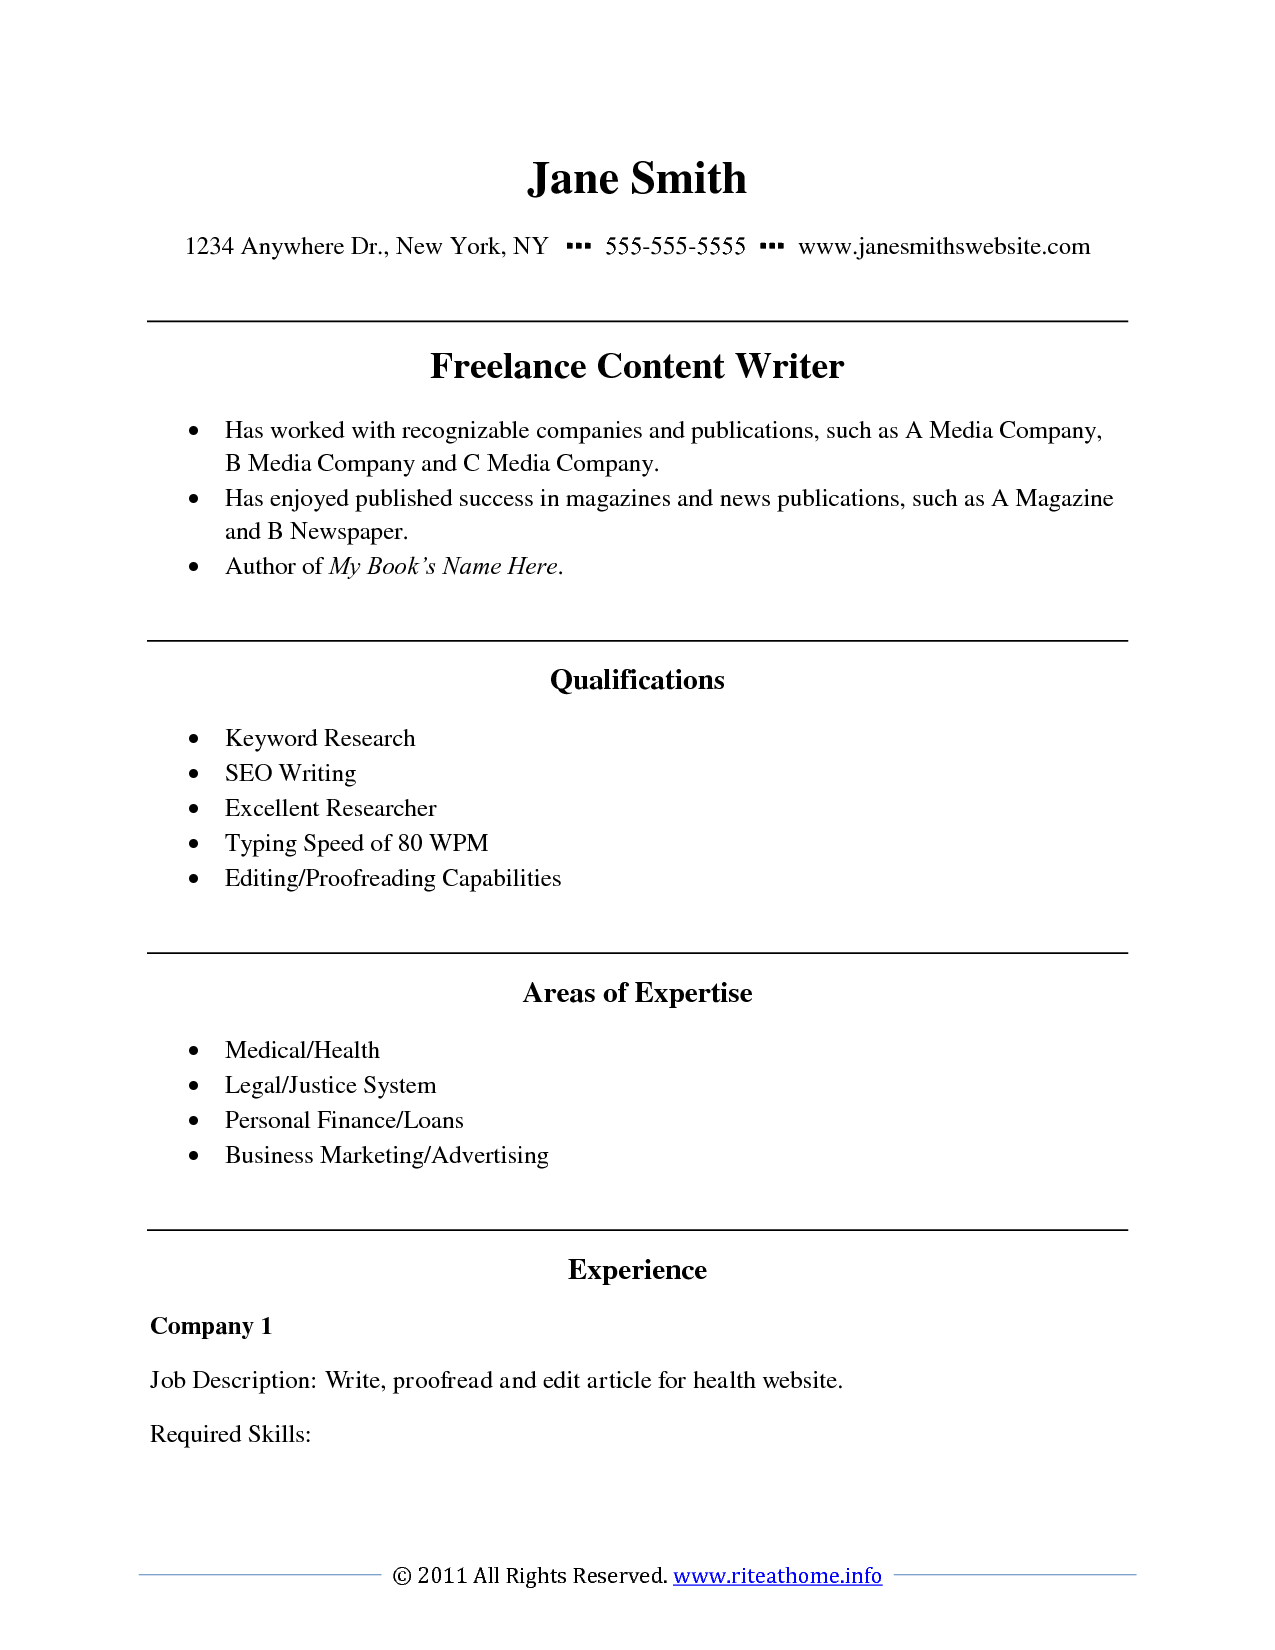 Example of writing resume